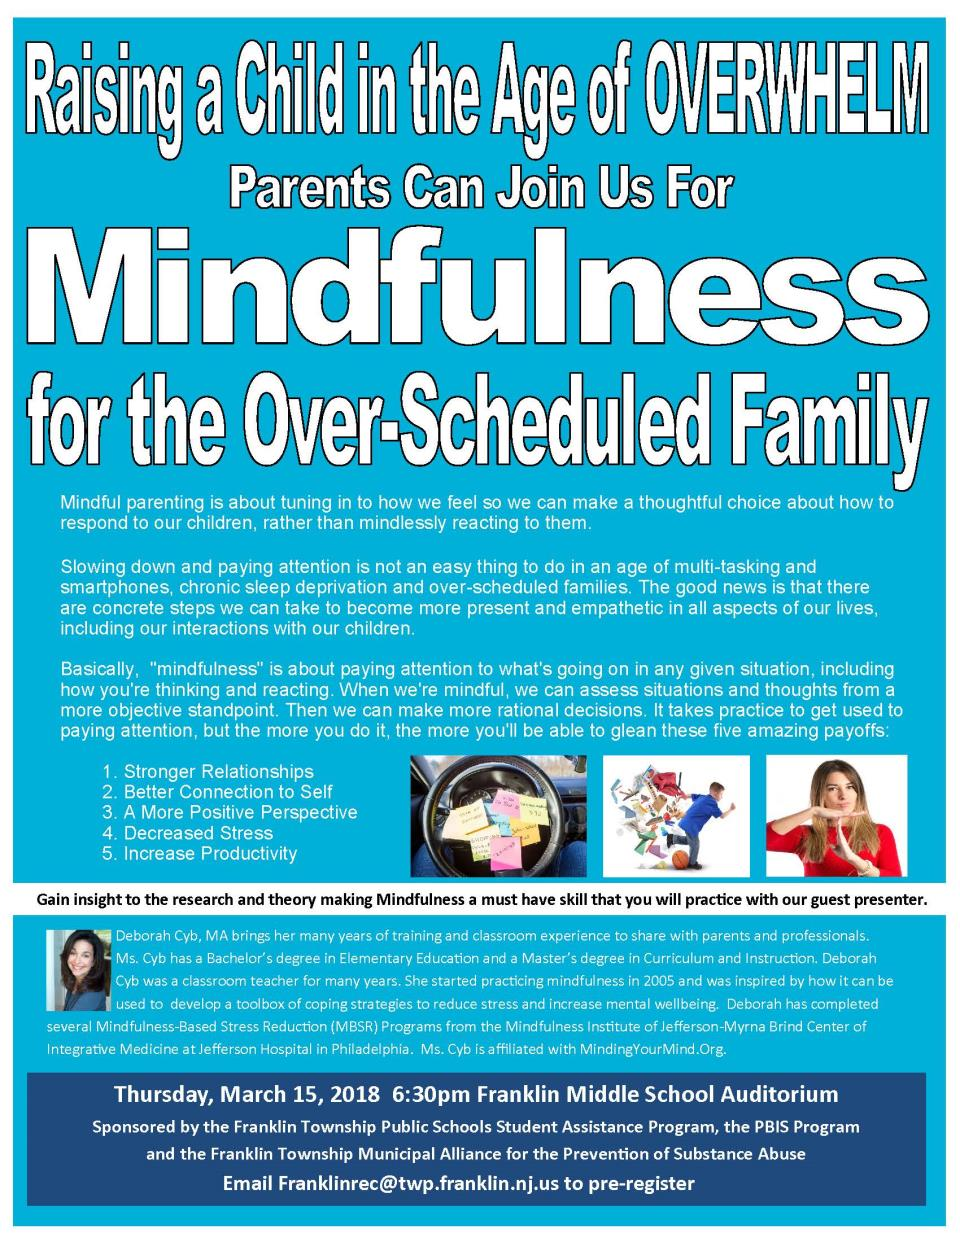 Mindfulness workshop at FMS 3.15.18 for parents